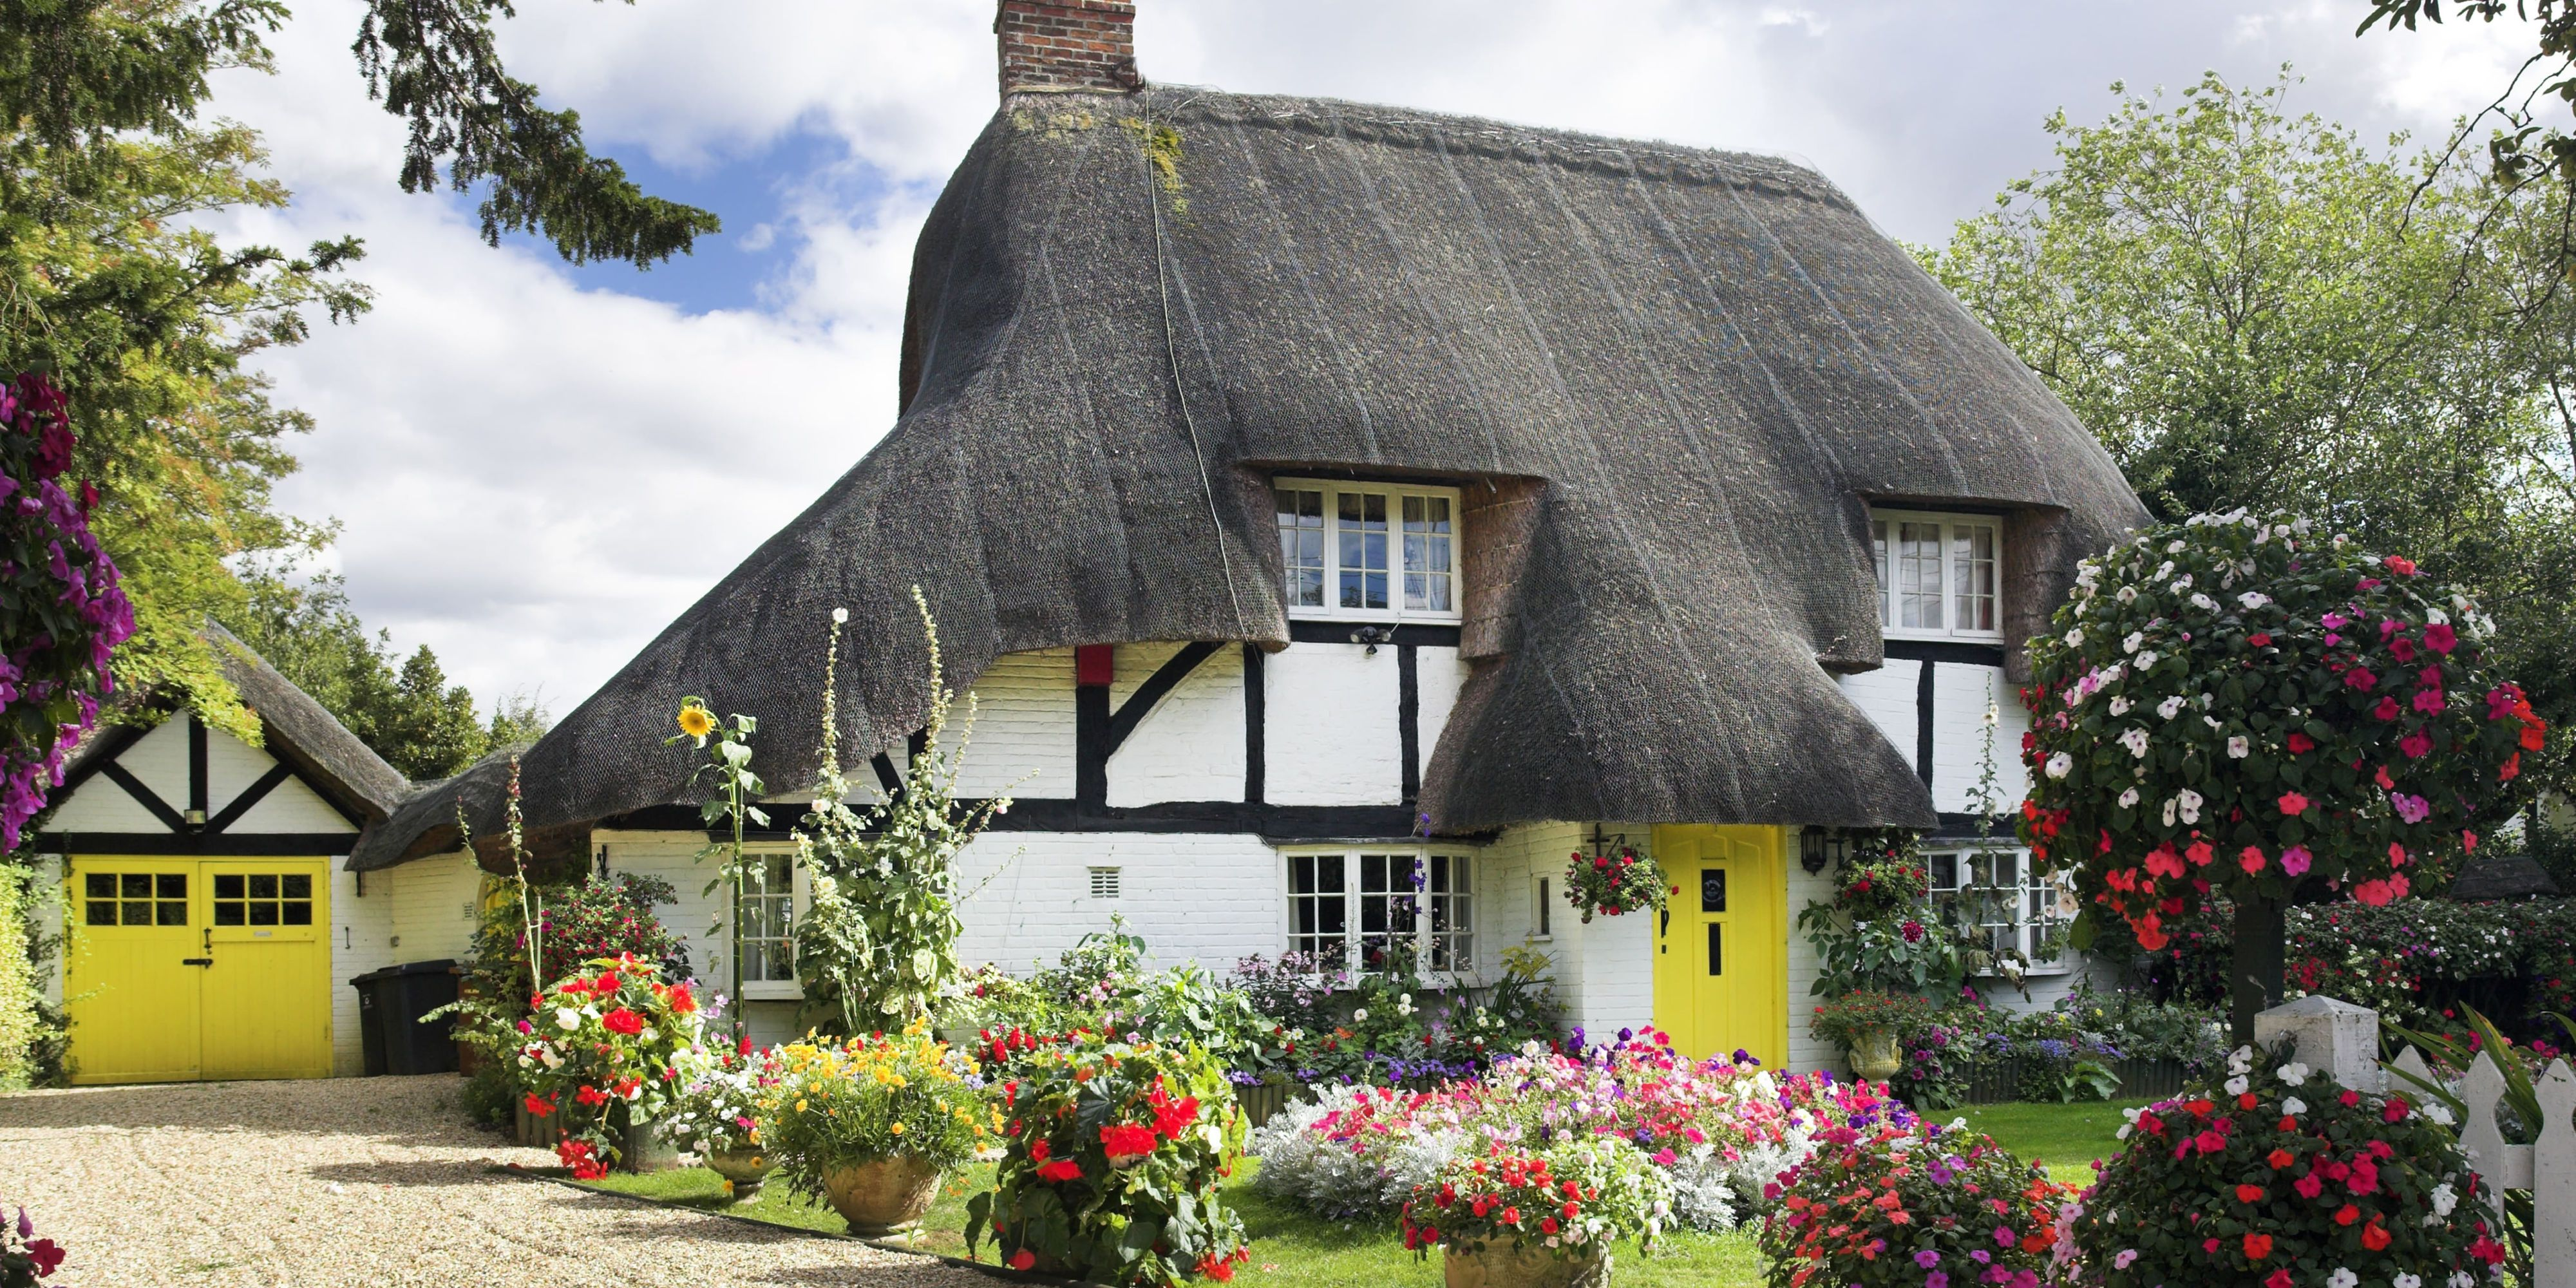 11 photos of english country cottages that make us want one right now rh countryliving com images of french country cottages pictures of country cottages interiors